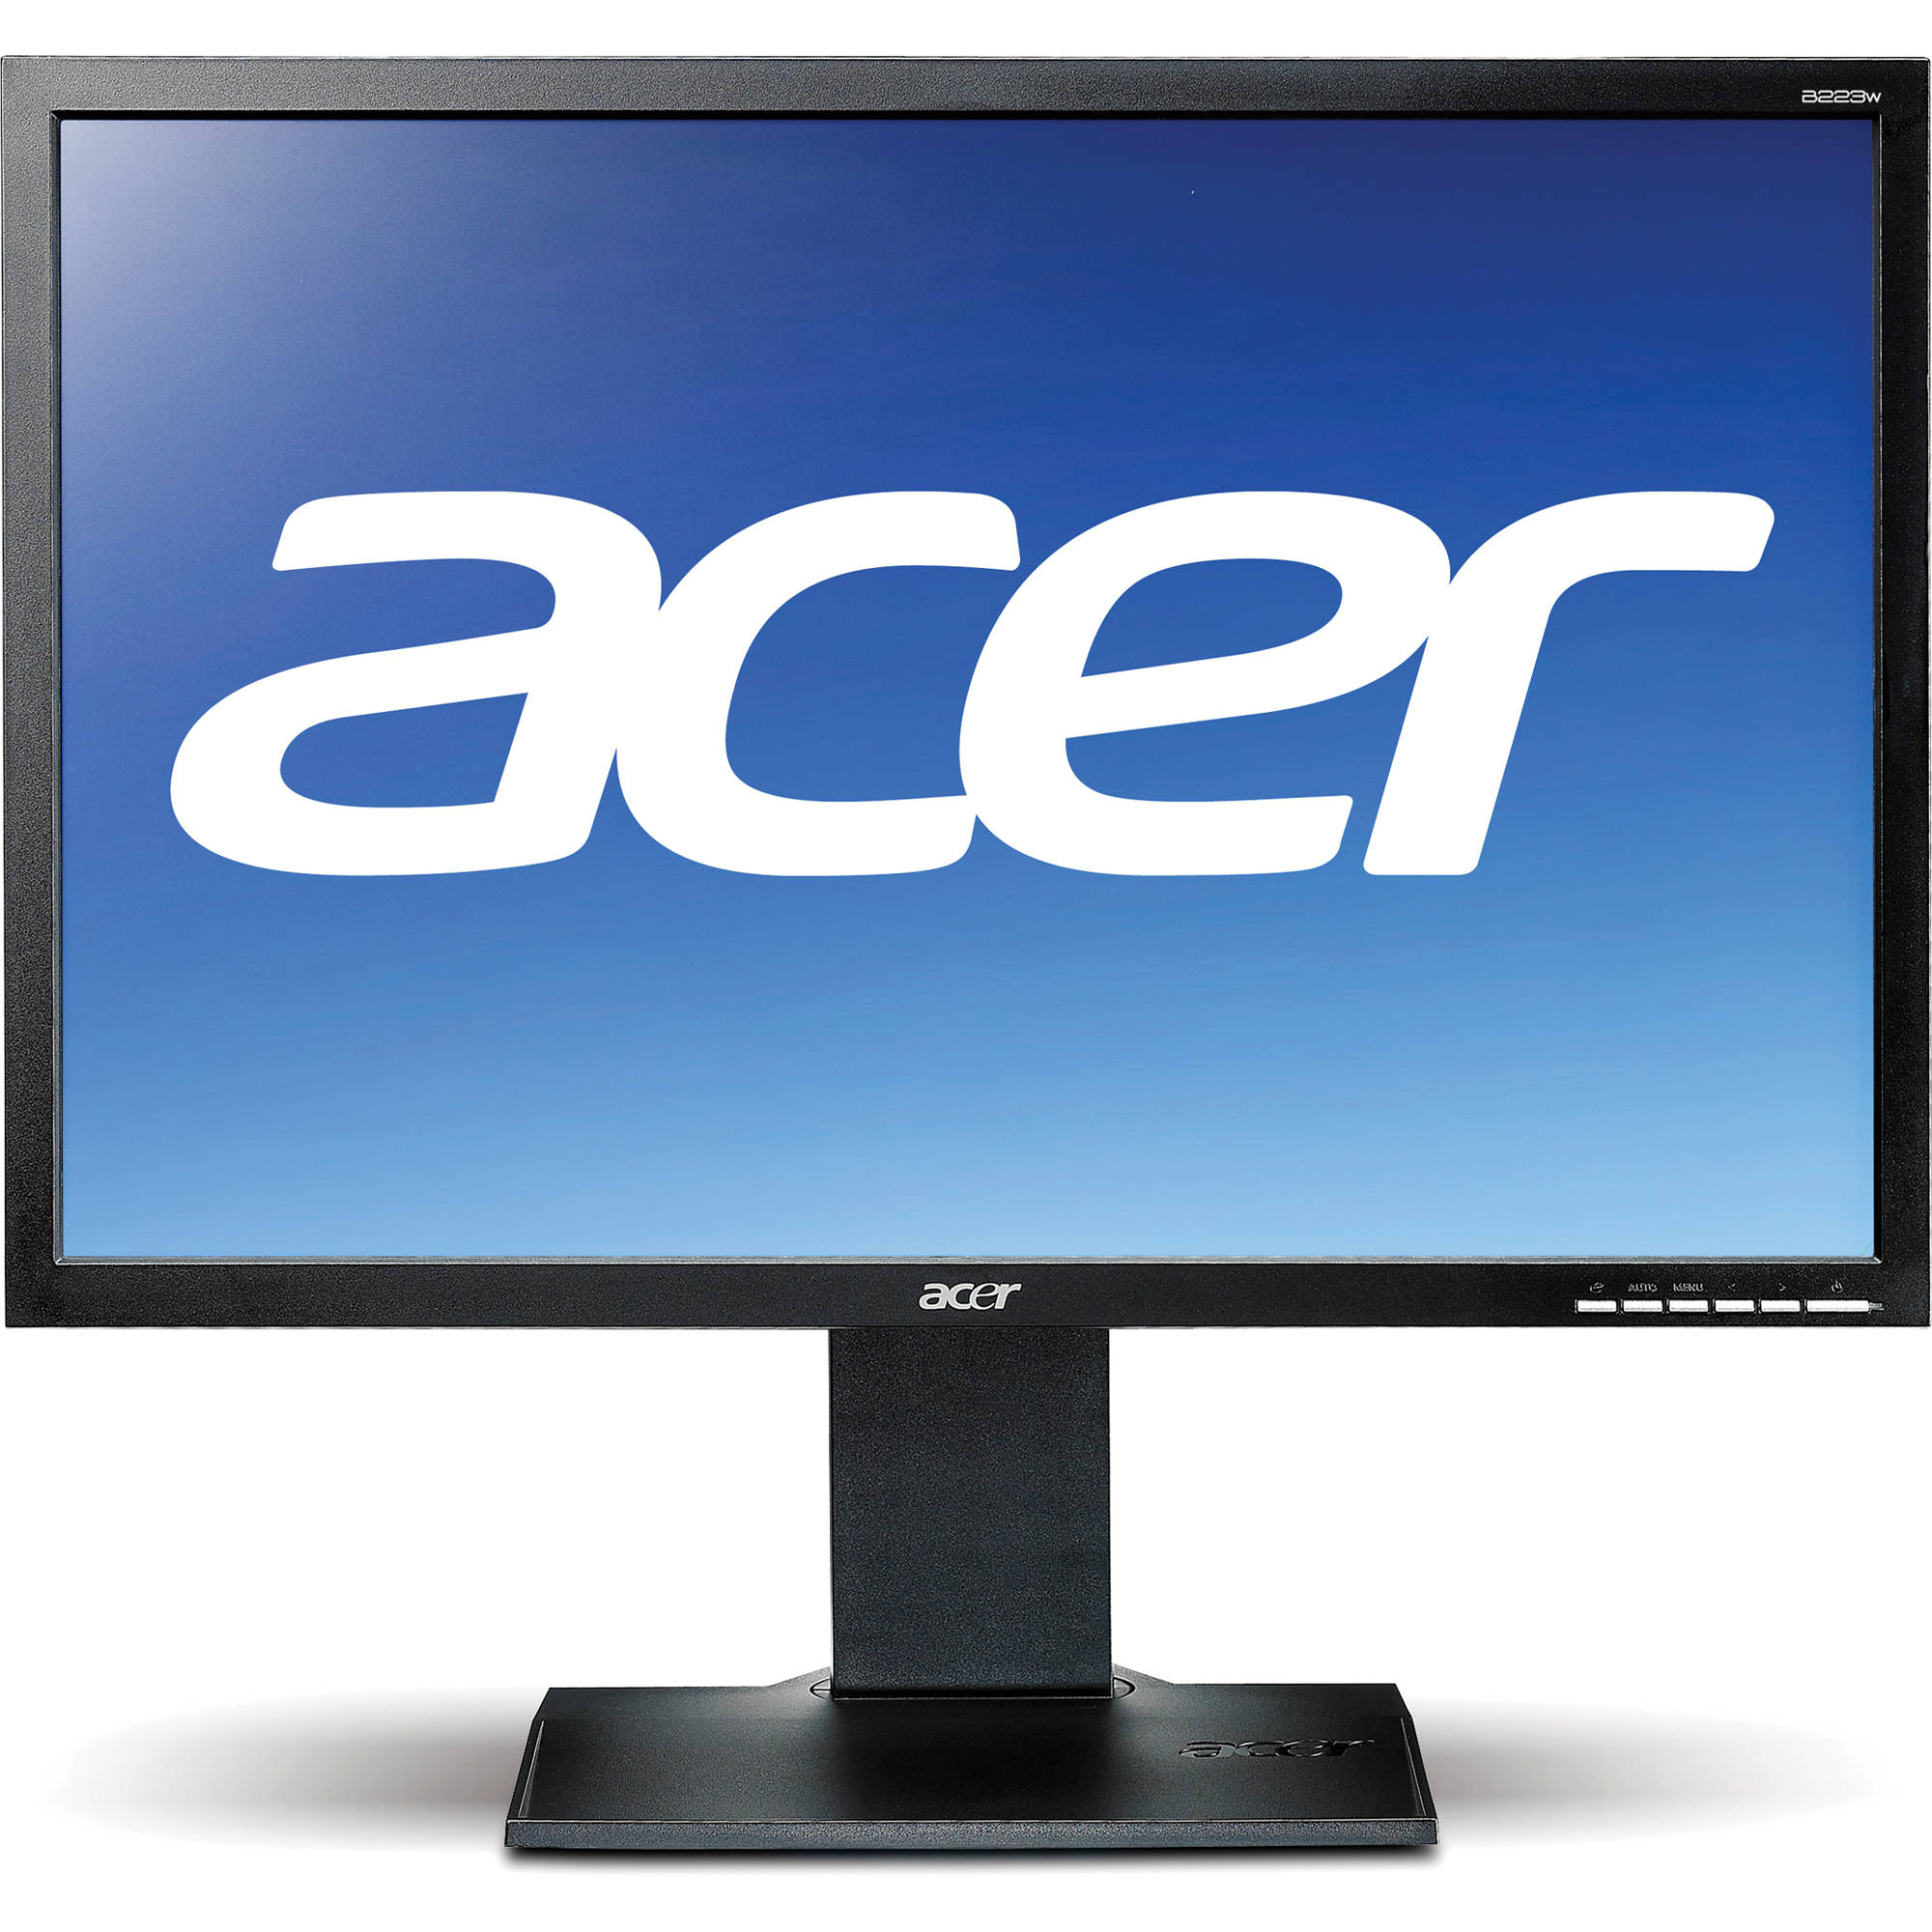 ACER B233HL MONITOR DRIVER FOR WINDOWS 7